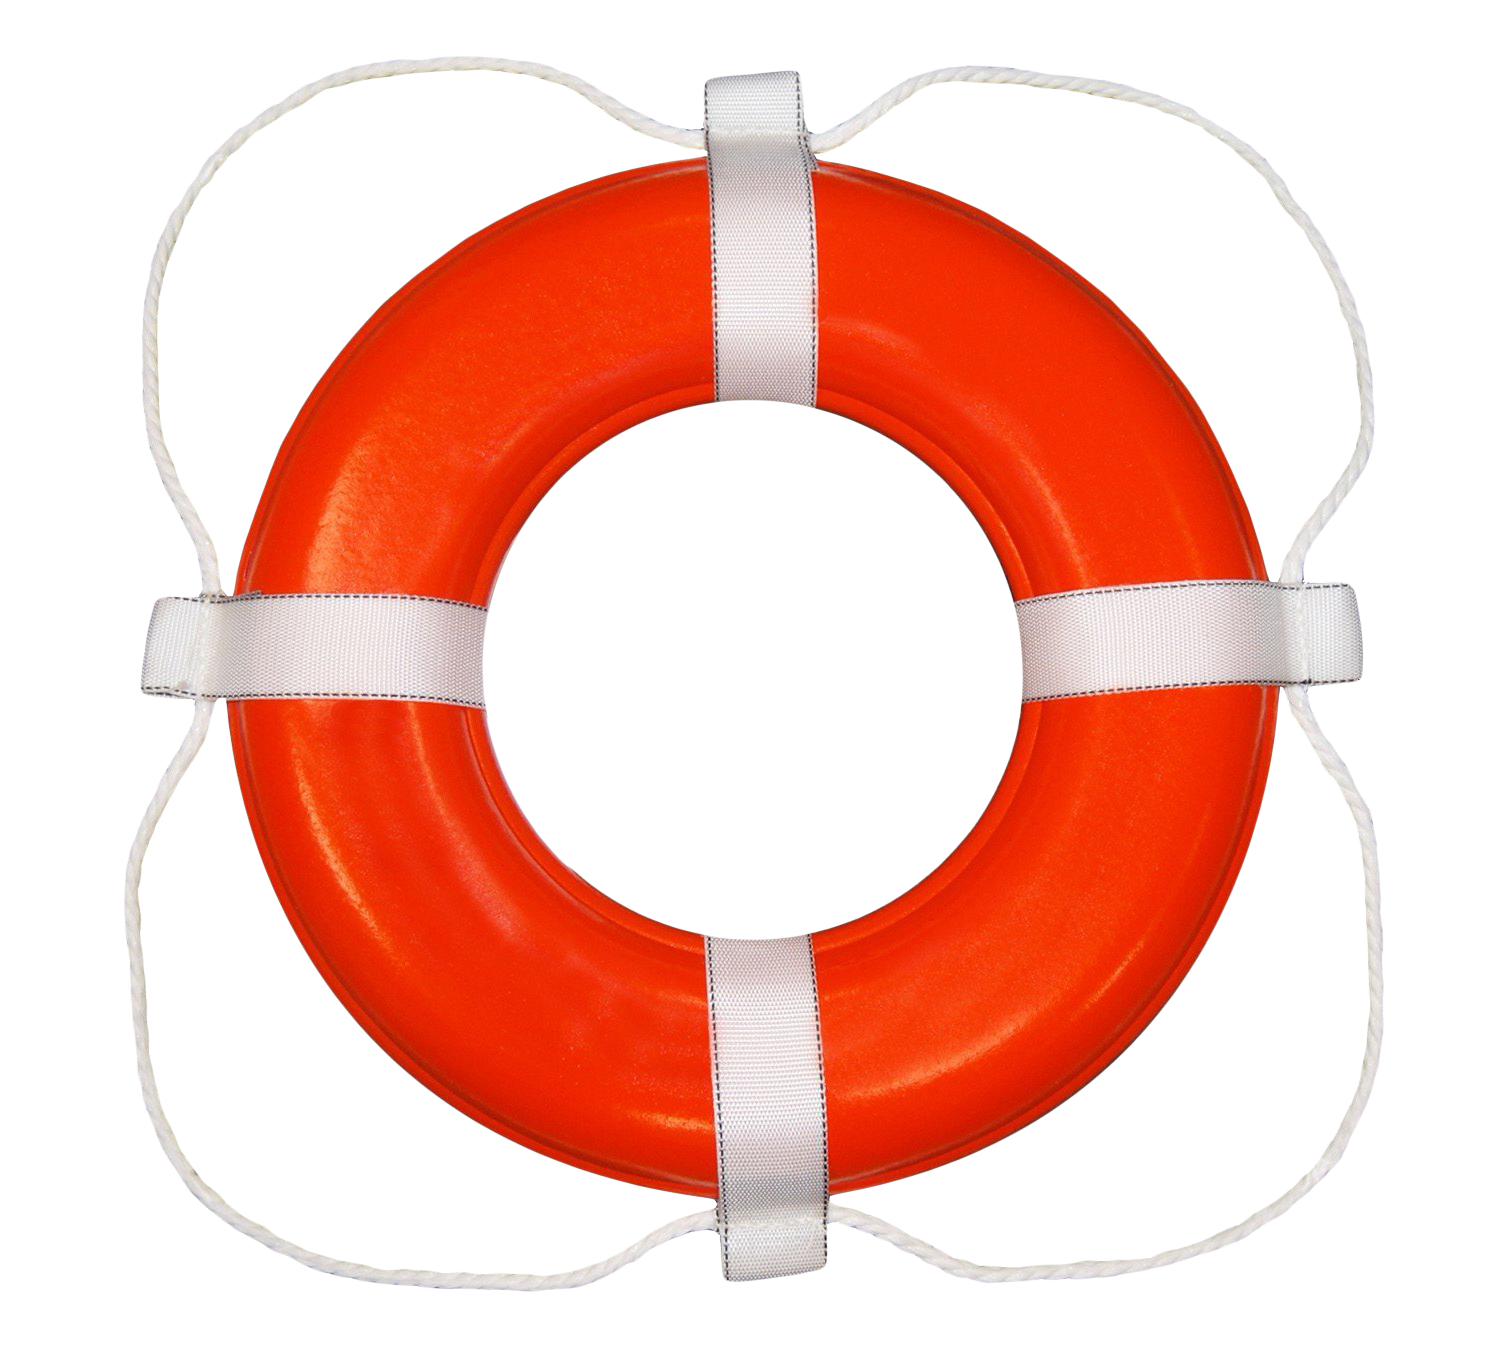 Nautical clipart life ring, Picture #1723235 nautical.